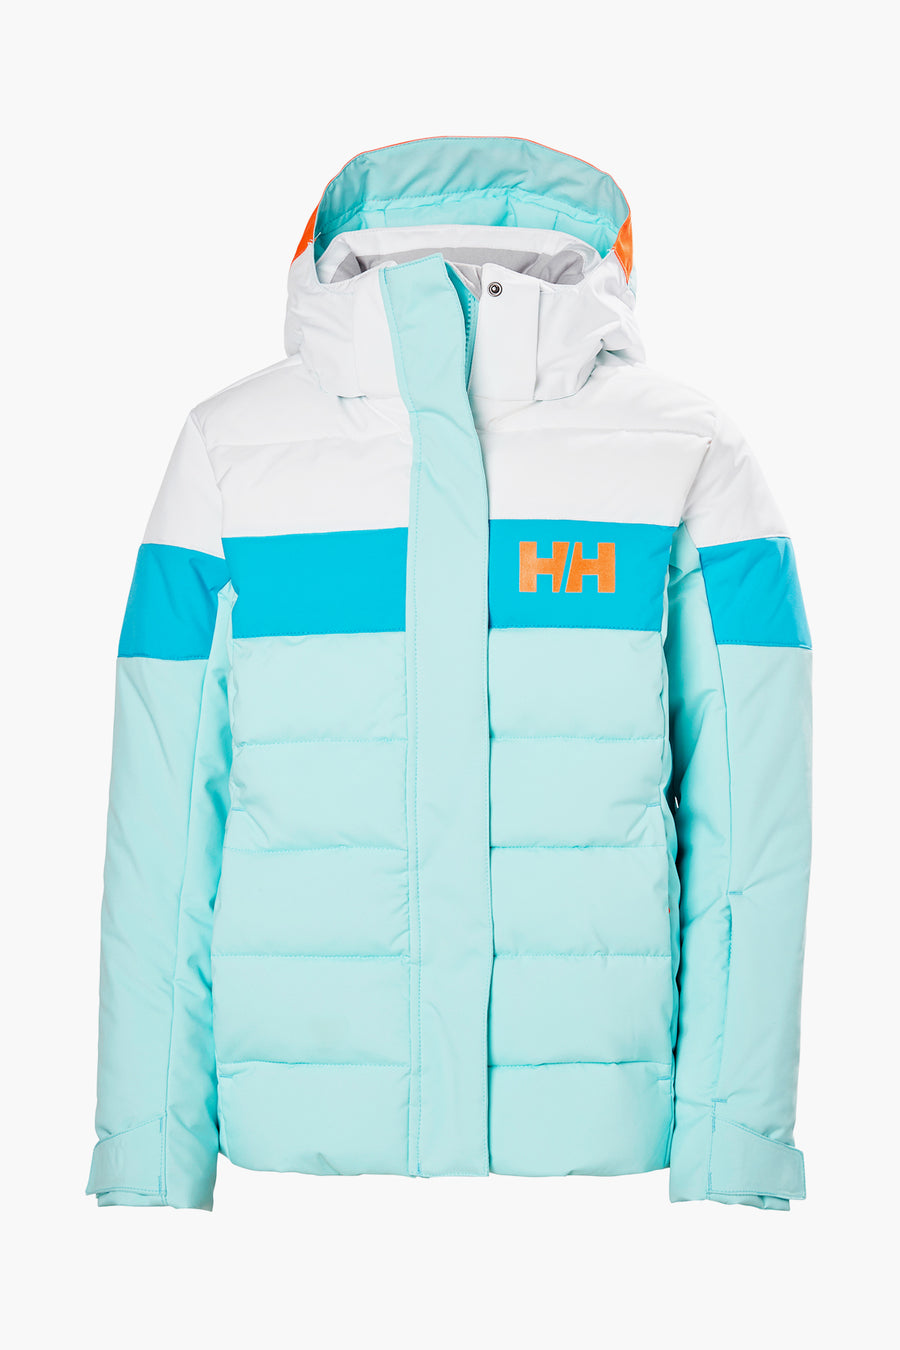 Helly Hansen Jr Diamond Jacket - Blue Tint